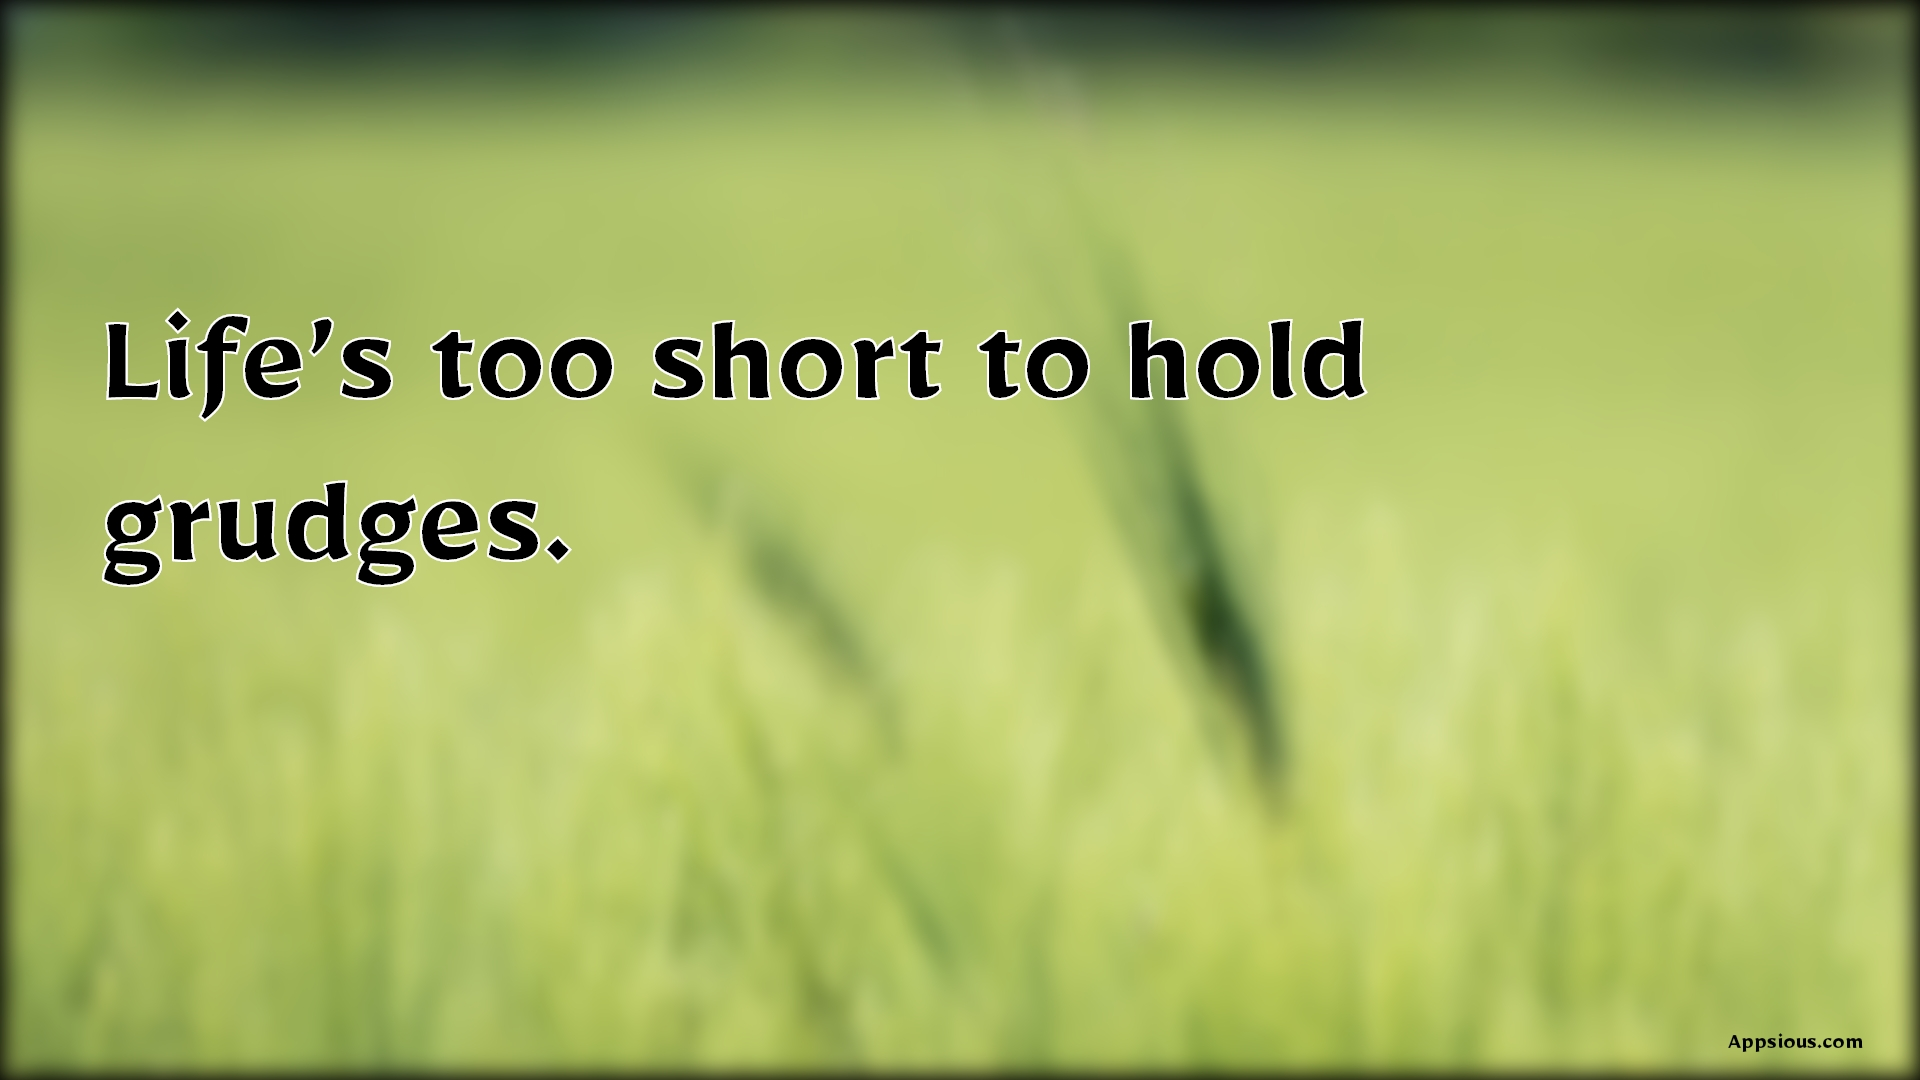 Life's too short to hold grudges.